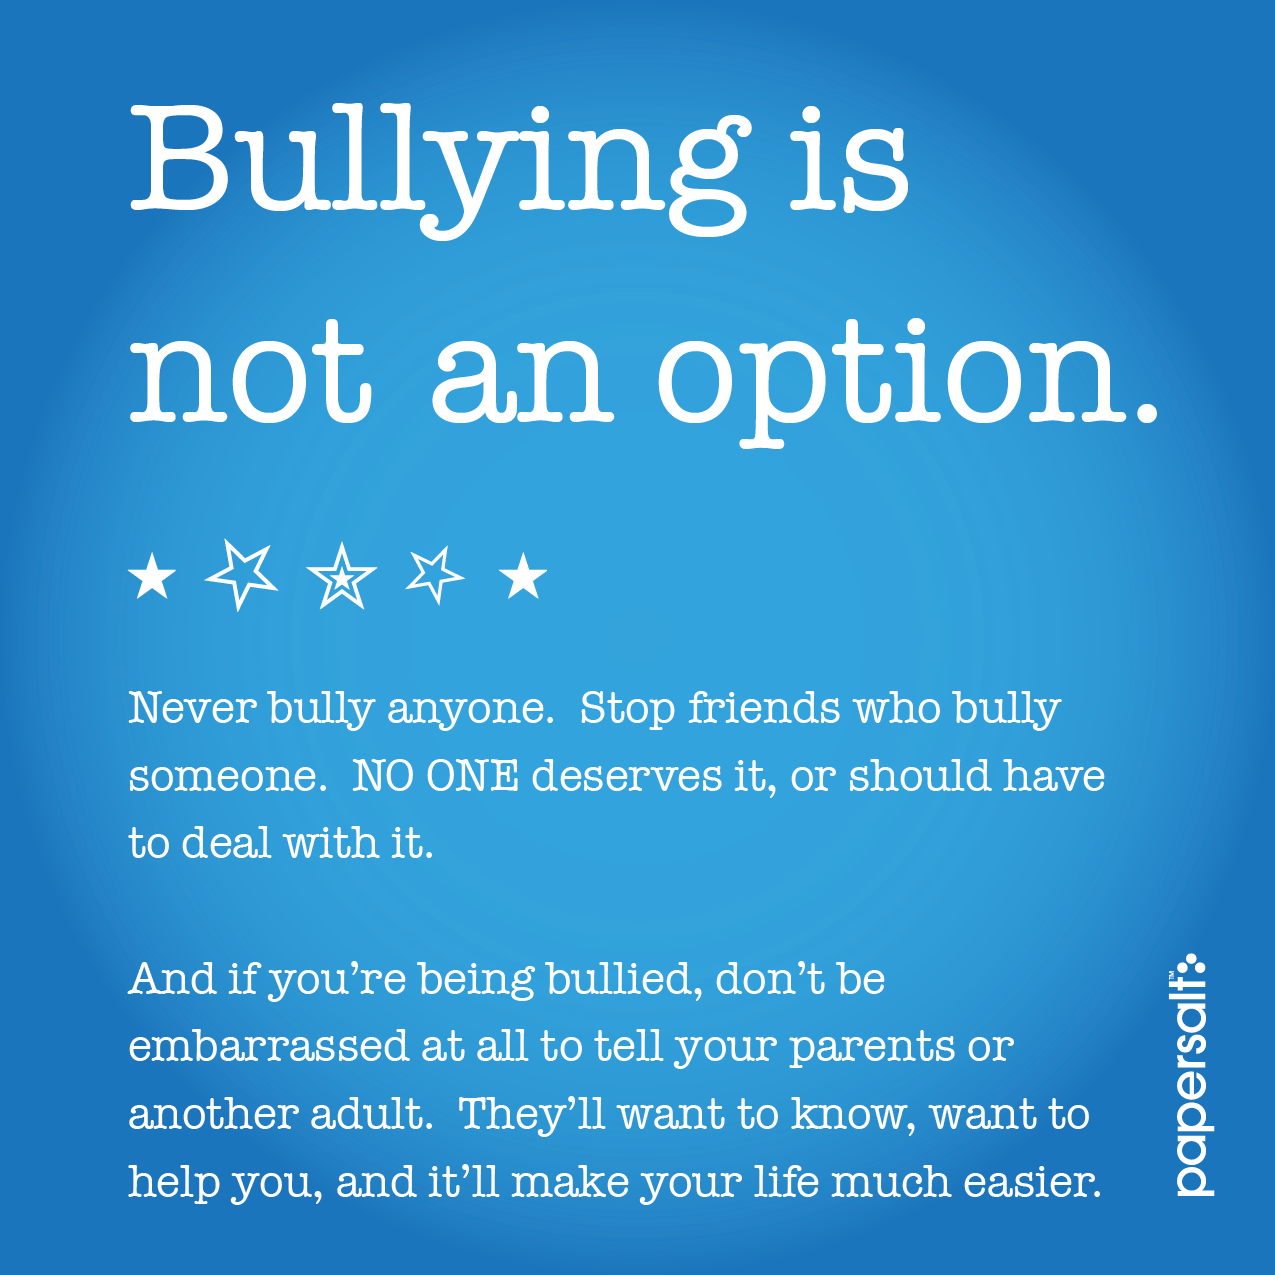 October Is Bullying Awareness Month From The Being A Boy Book Bullying Awareness Bullying Lessons Bully Awareness Month